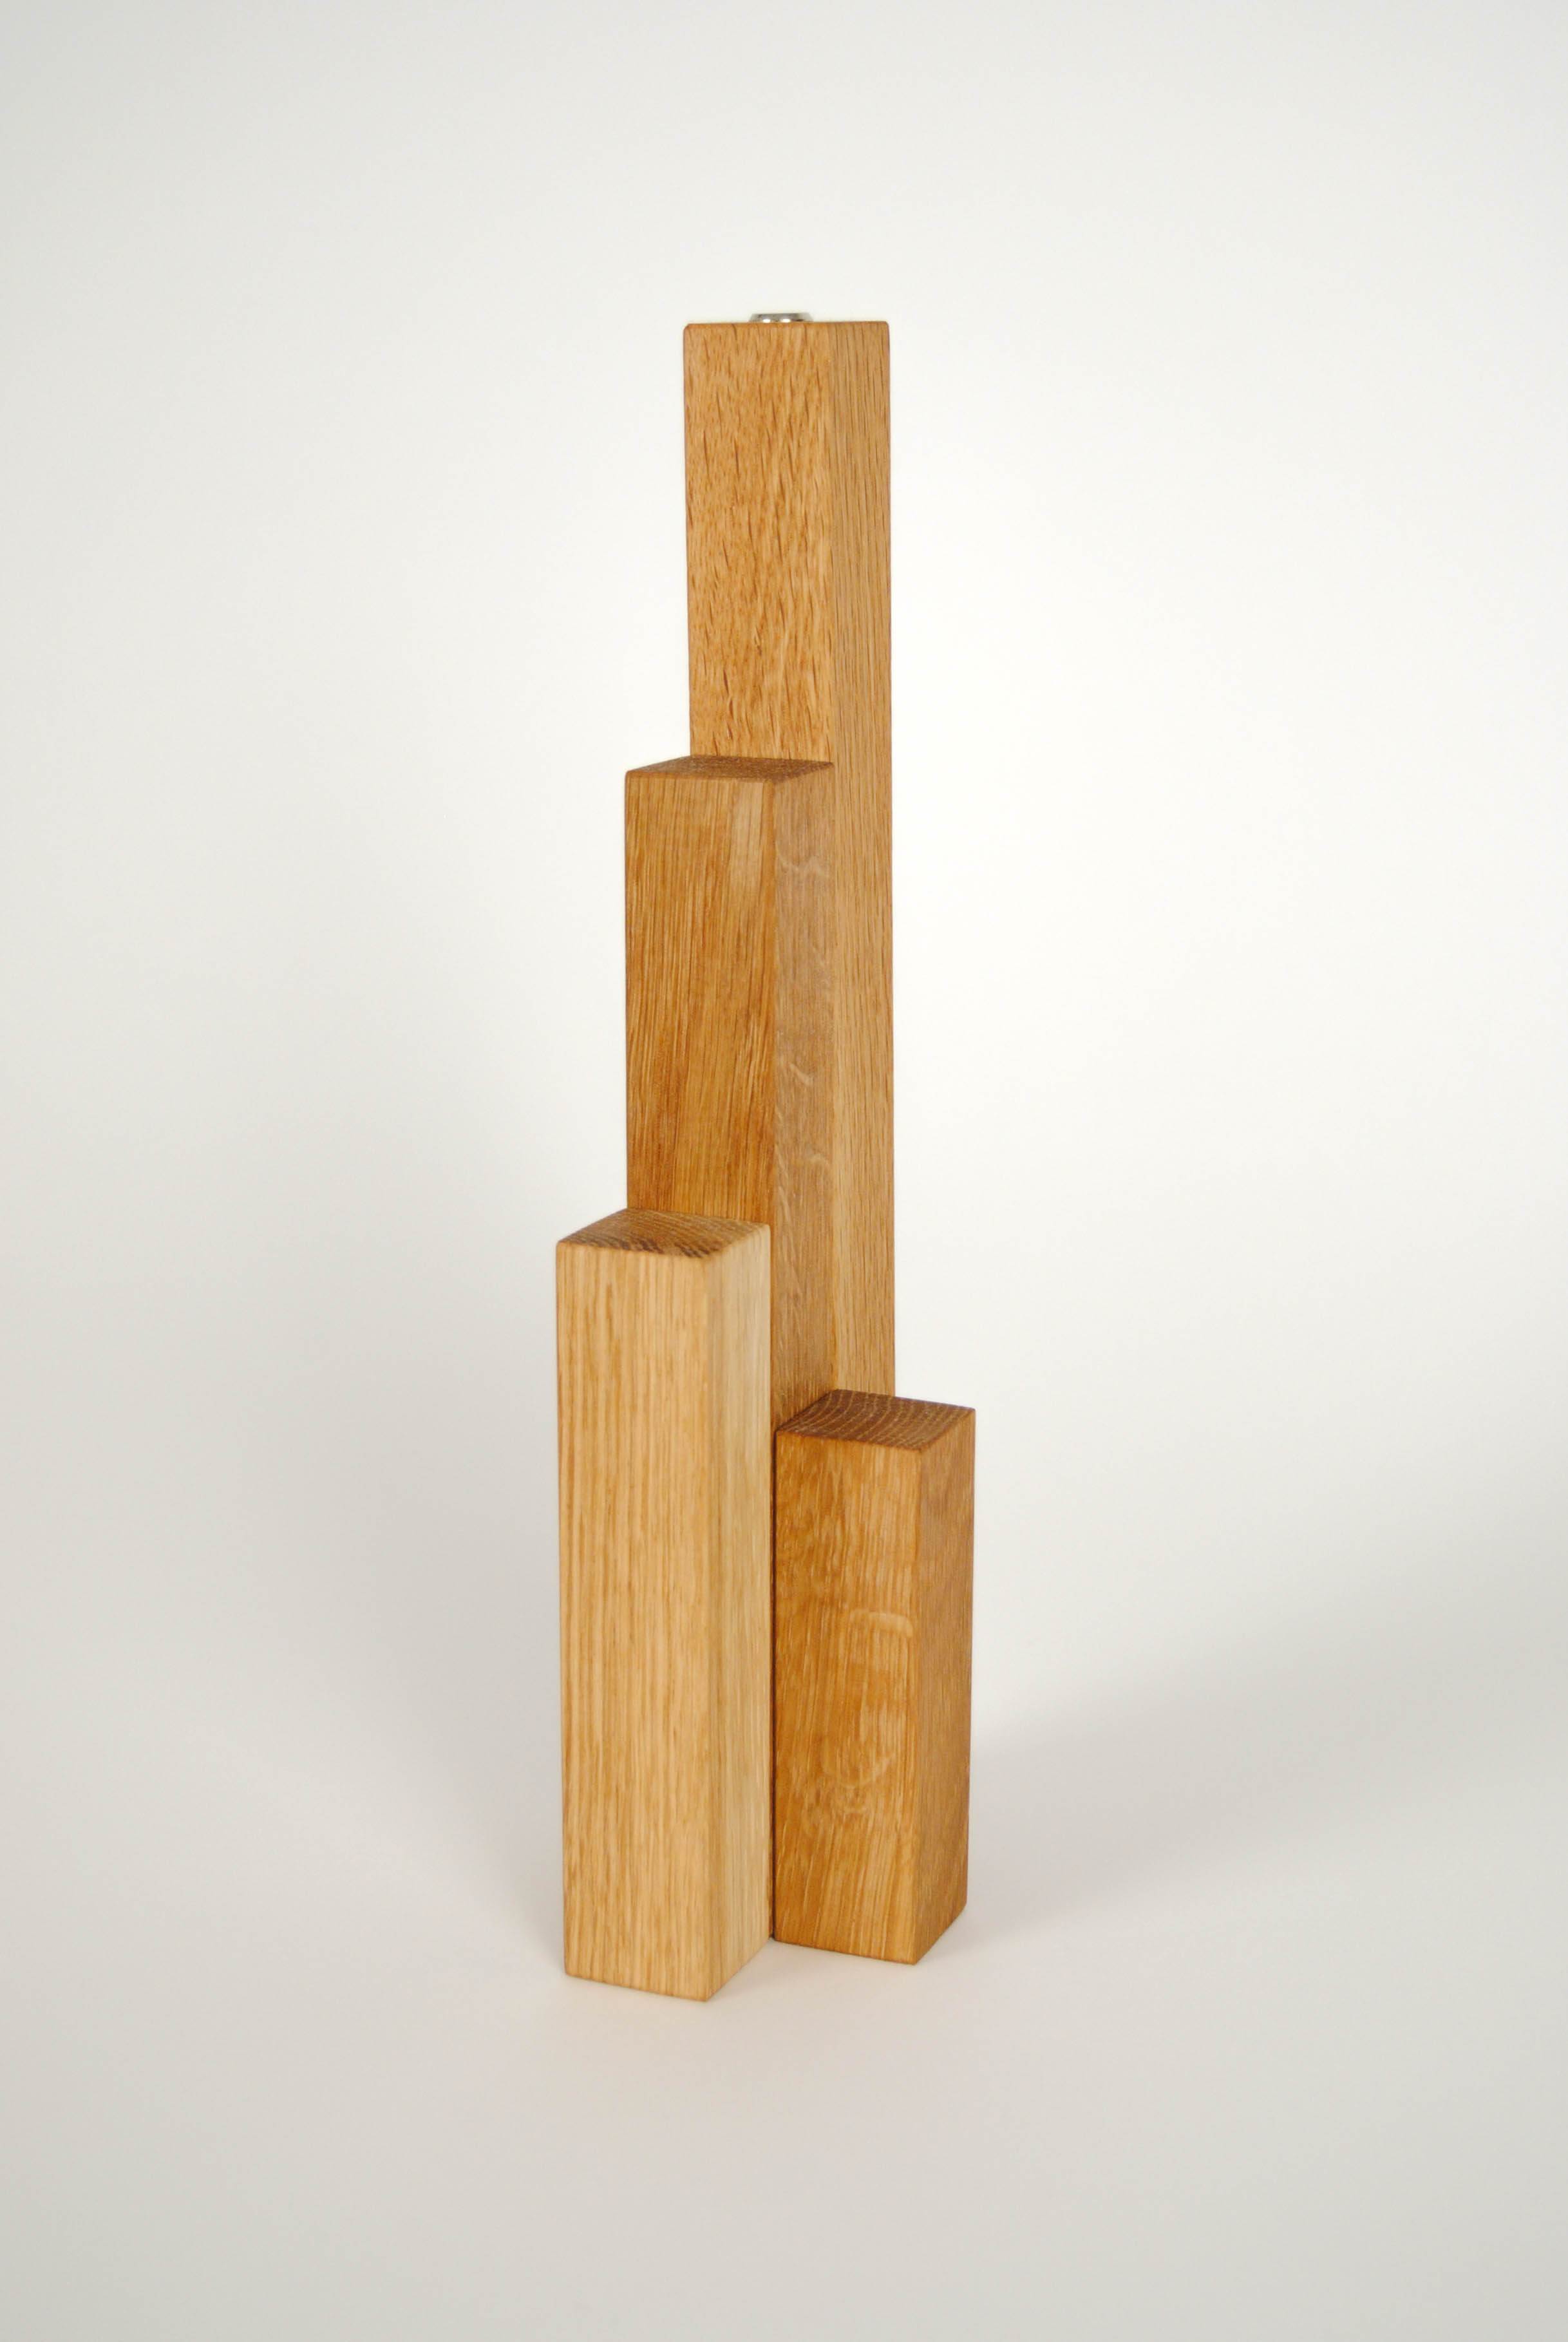 close tris lamp wooden on the backside